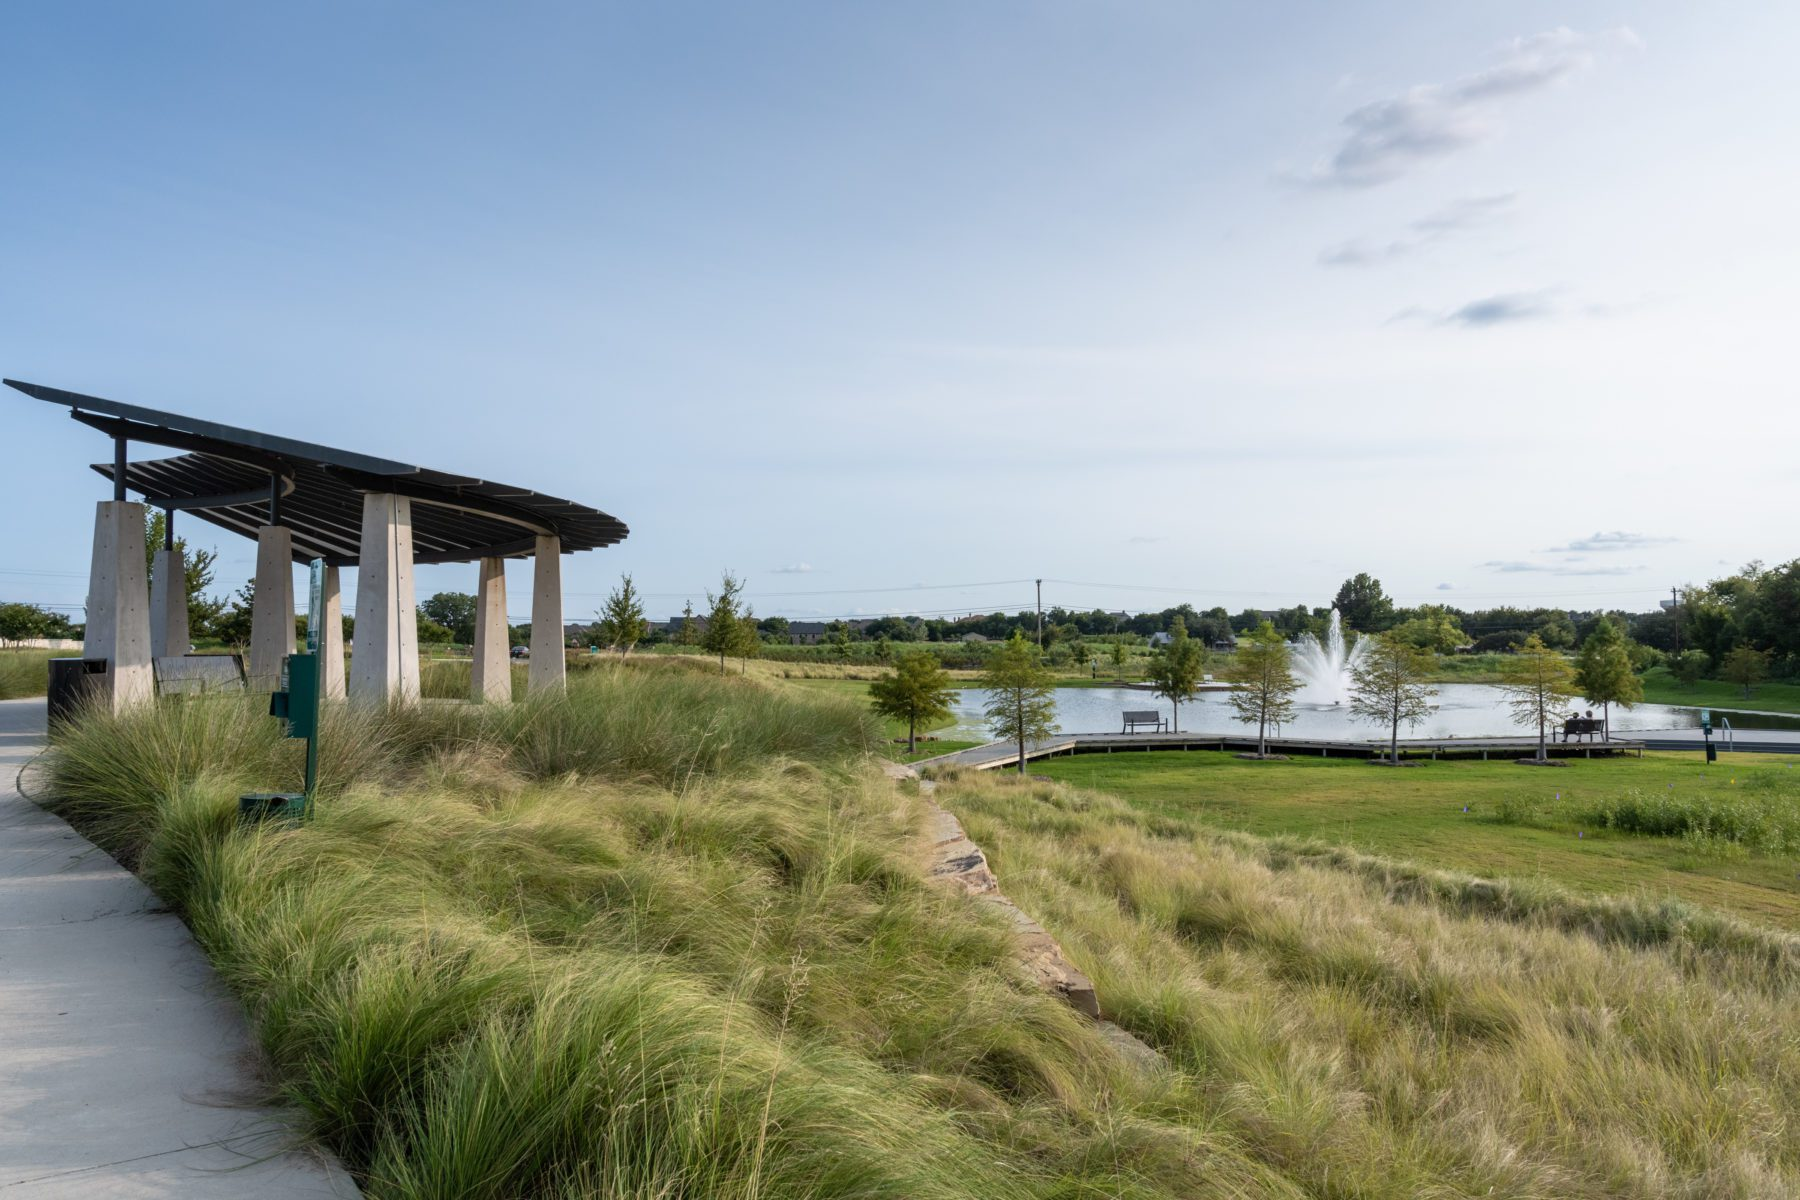 parks, trails, & green spaces